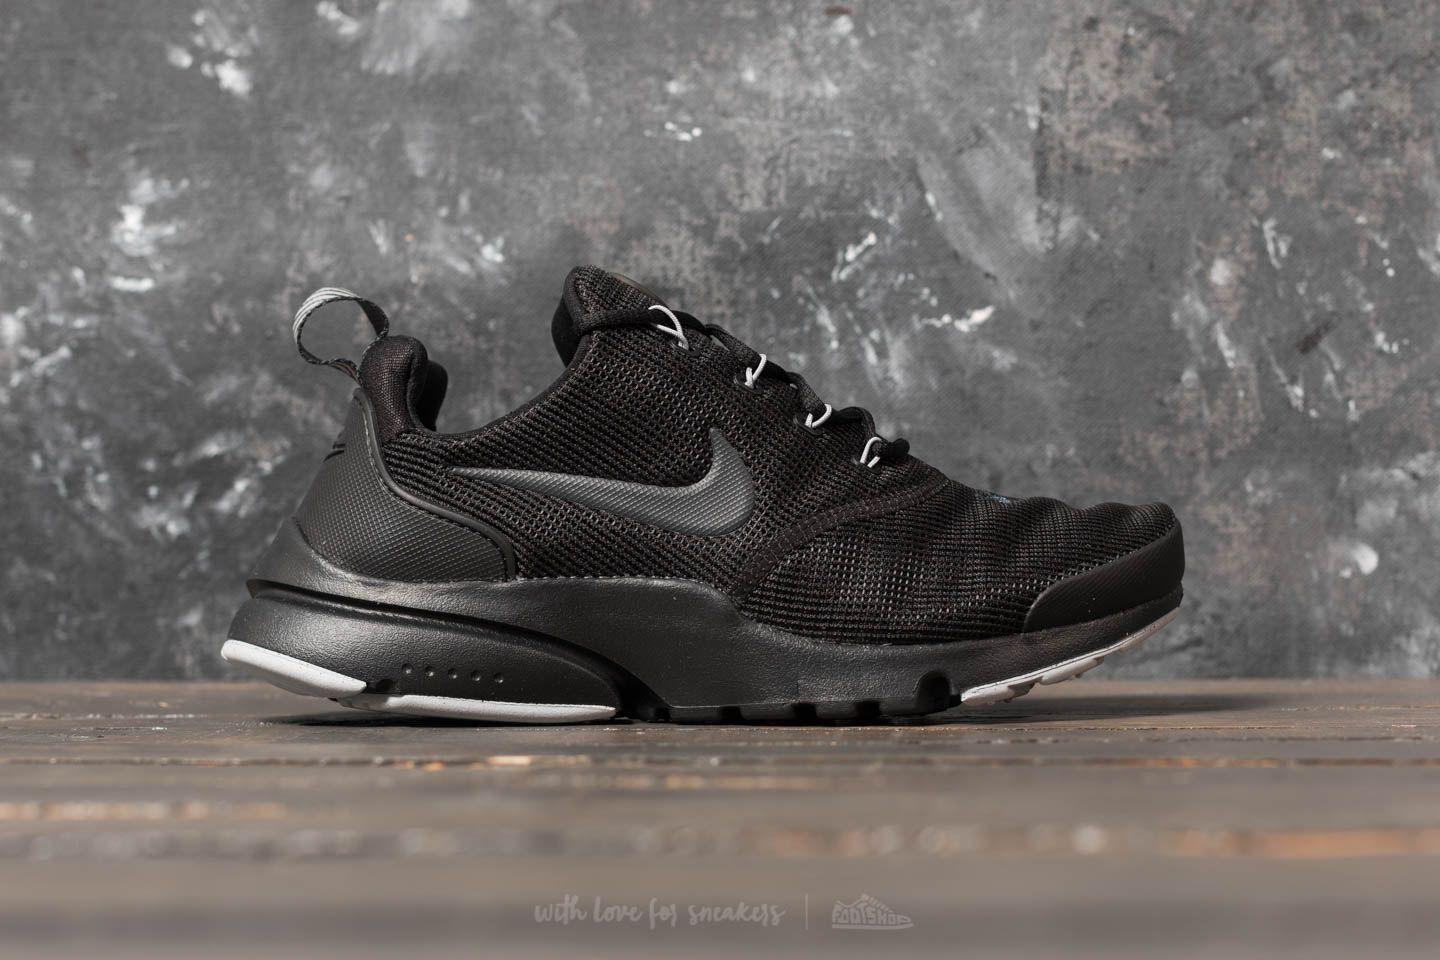 68574d533b32 Gray Men Presto Nike gs Fly In Anthracite For Lyst Black Wolf Grey zxZPOzw